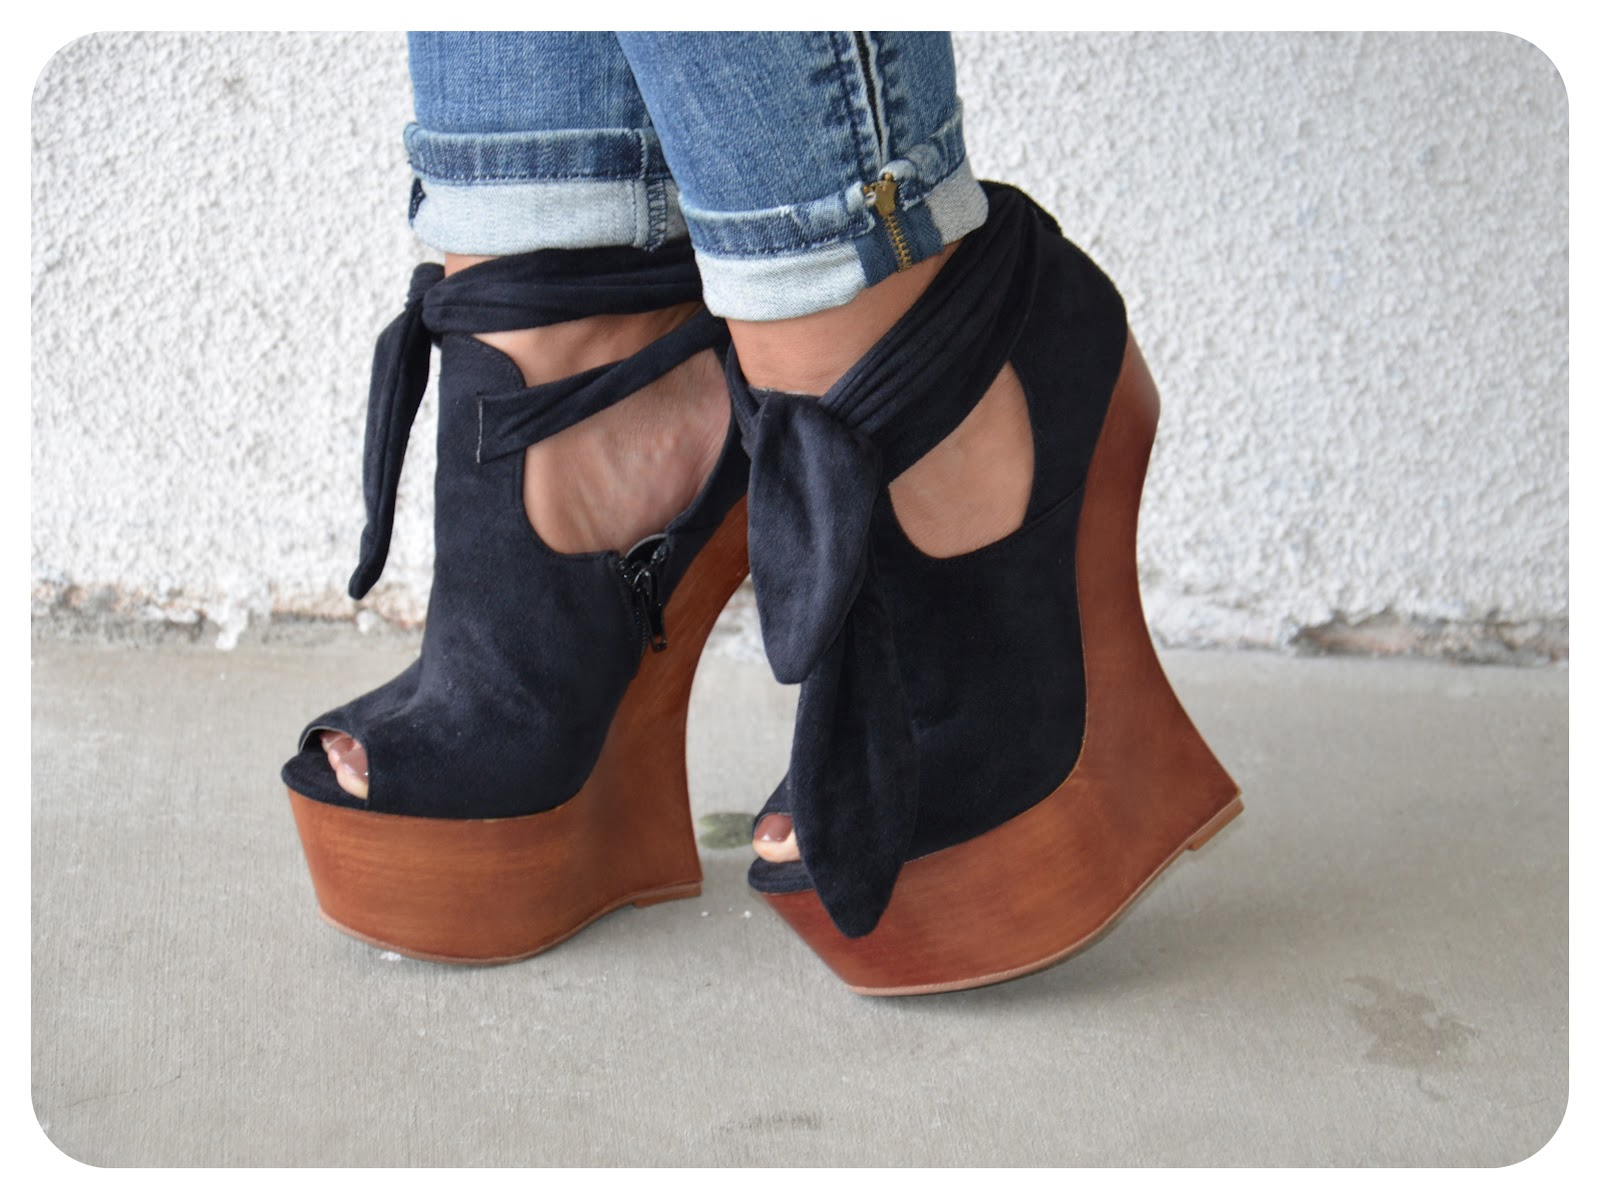 Heelless Shoes For Sale Philippines